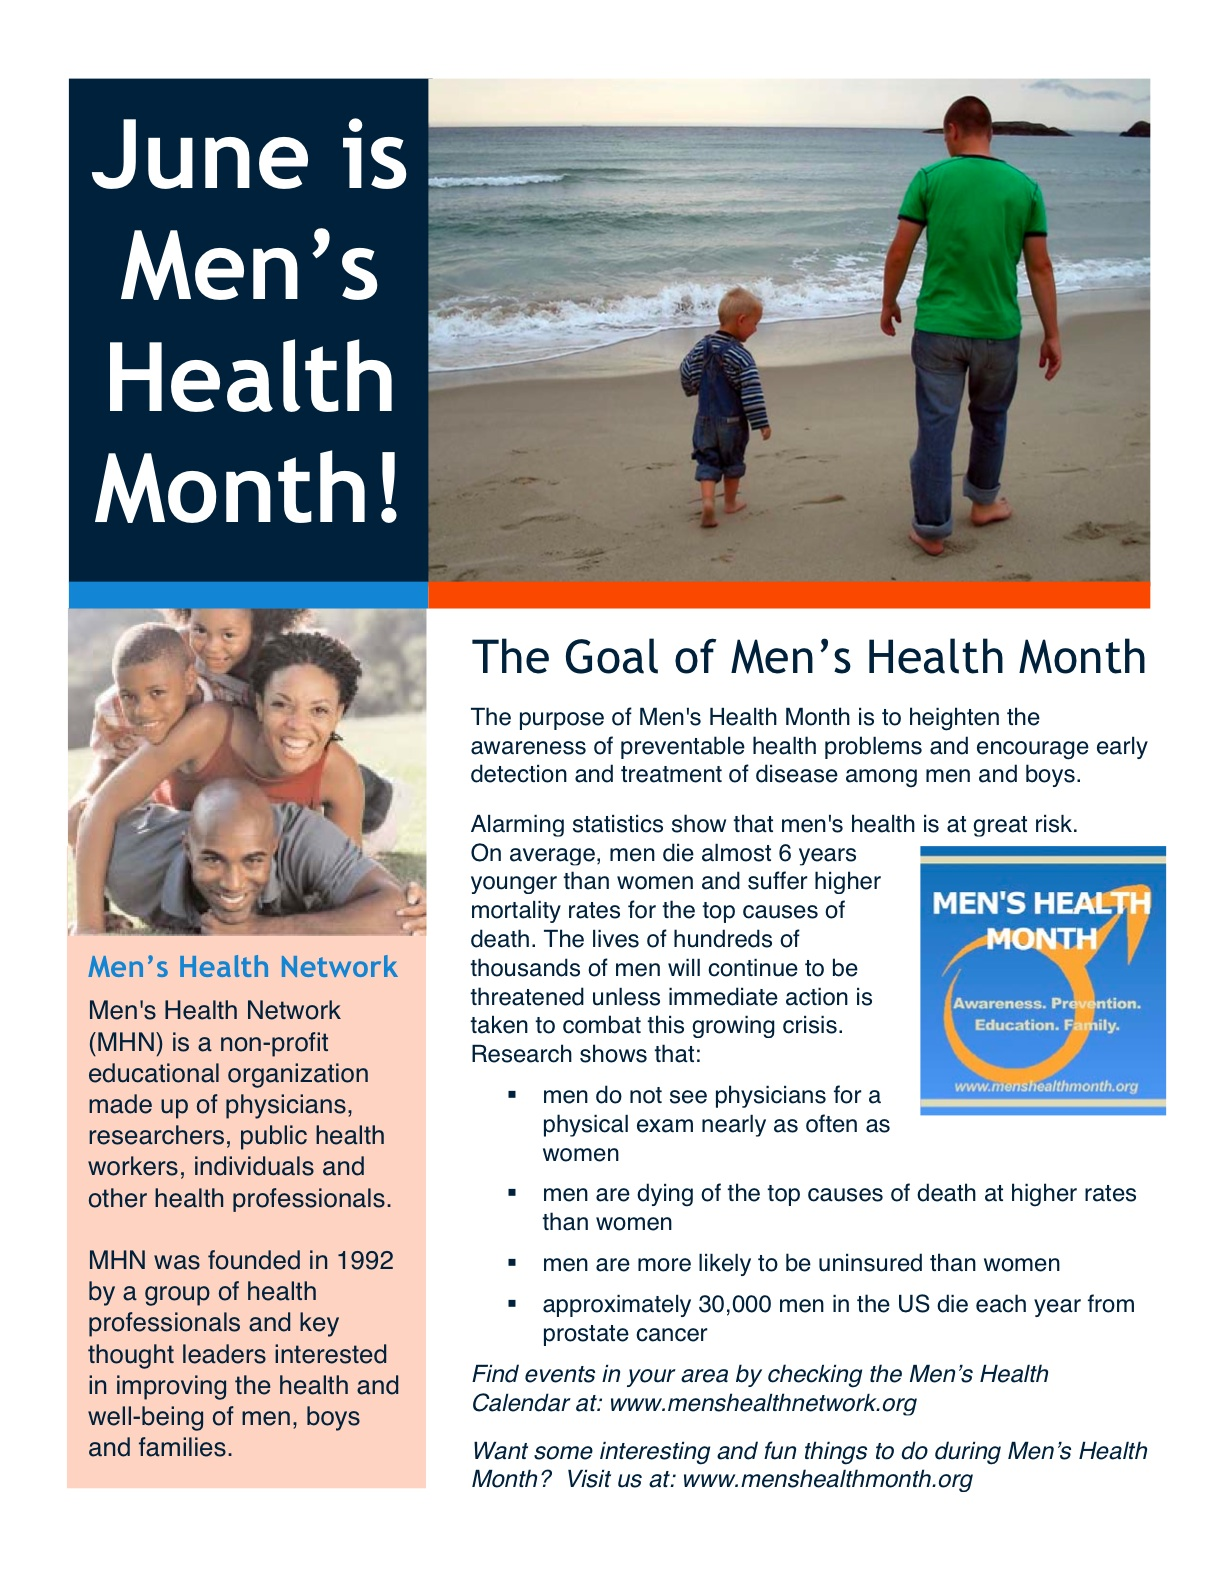 June 9-15 is Men's Health Week!